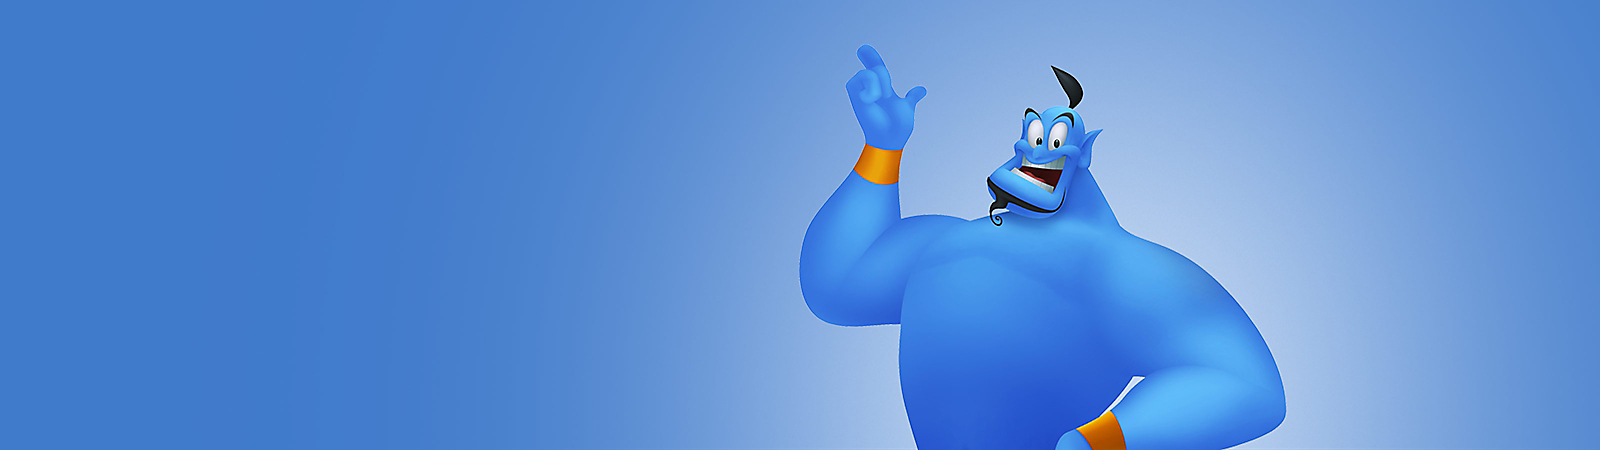 Background image of Genie